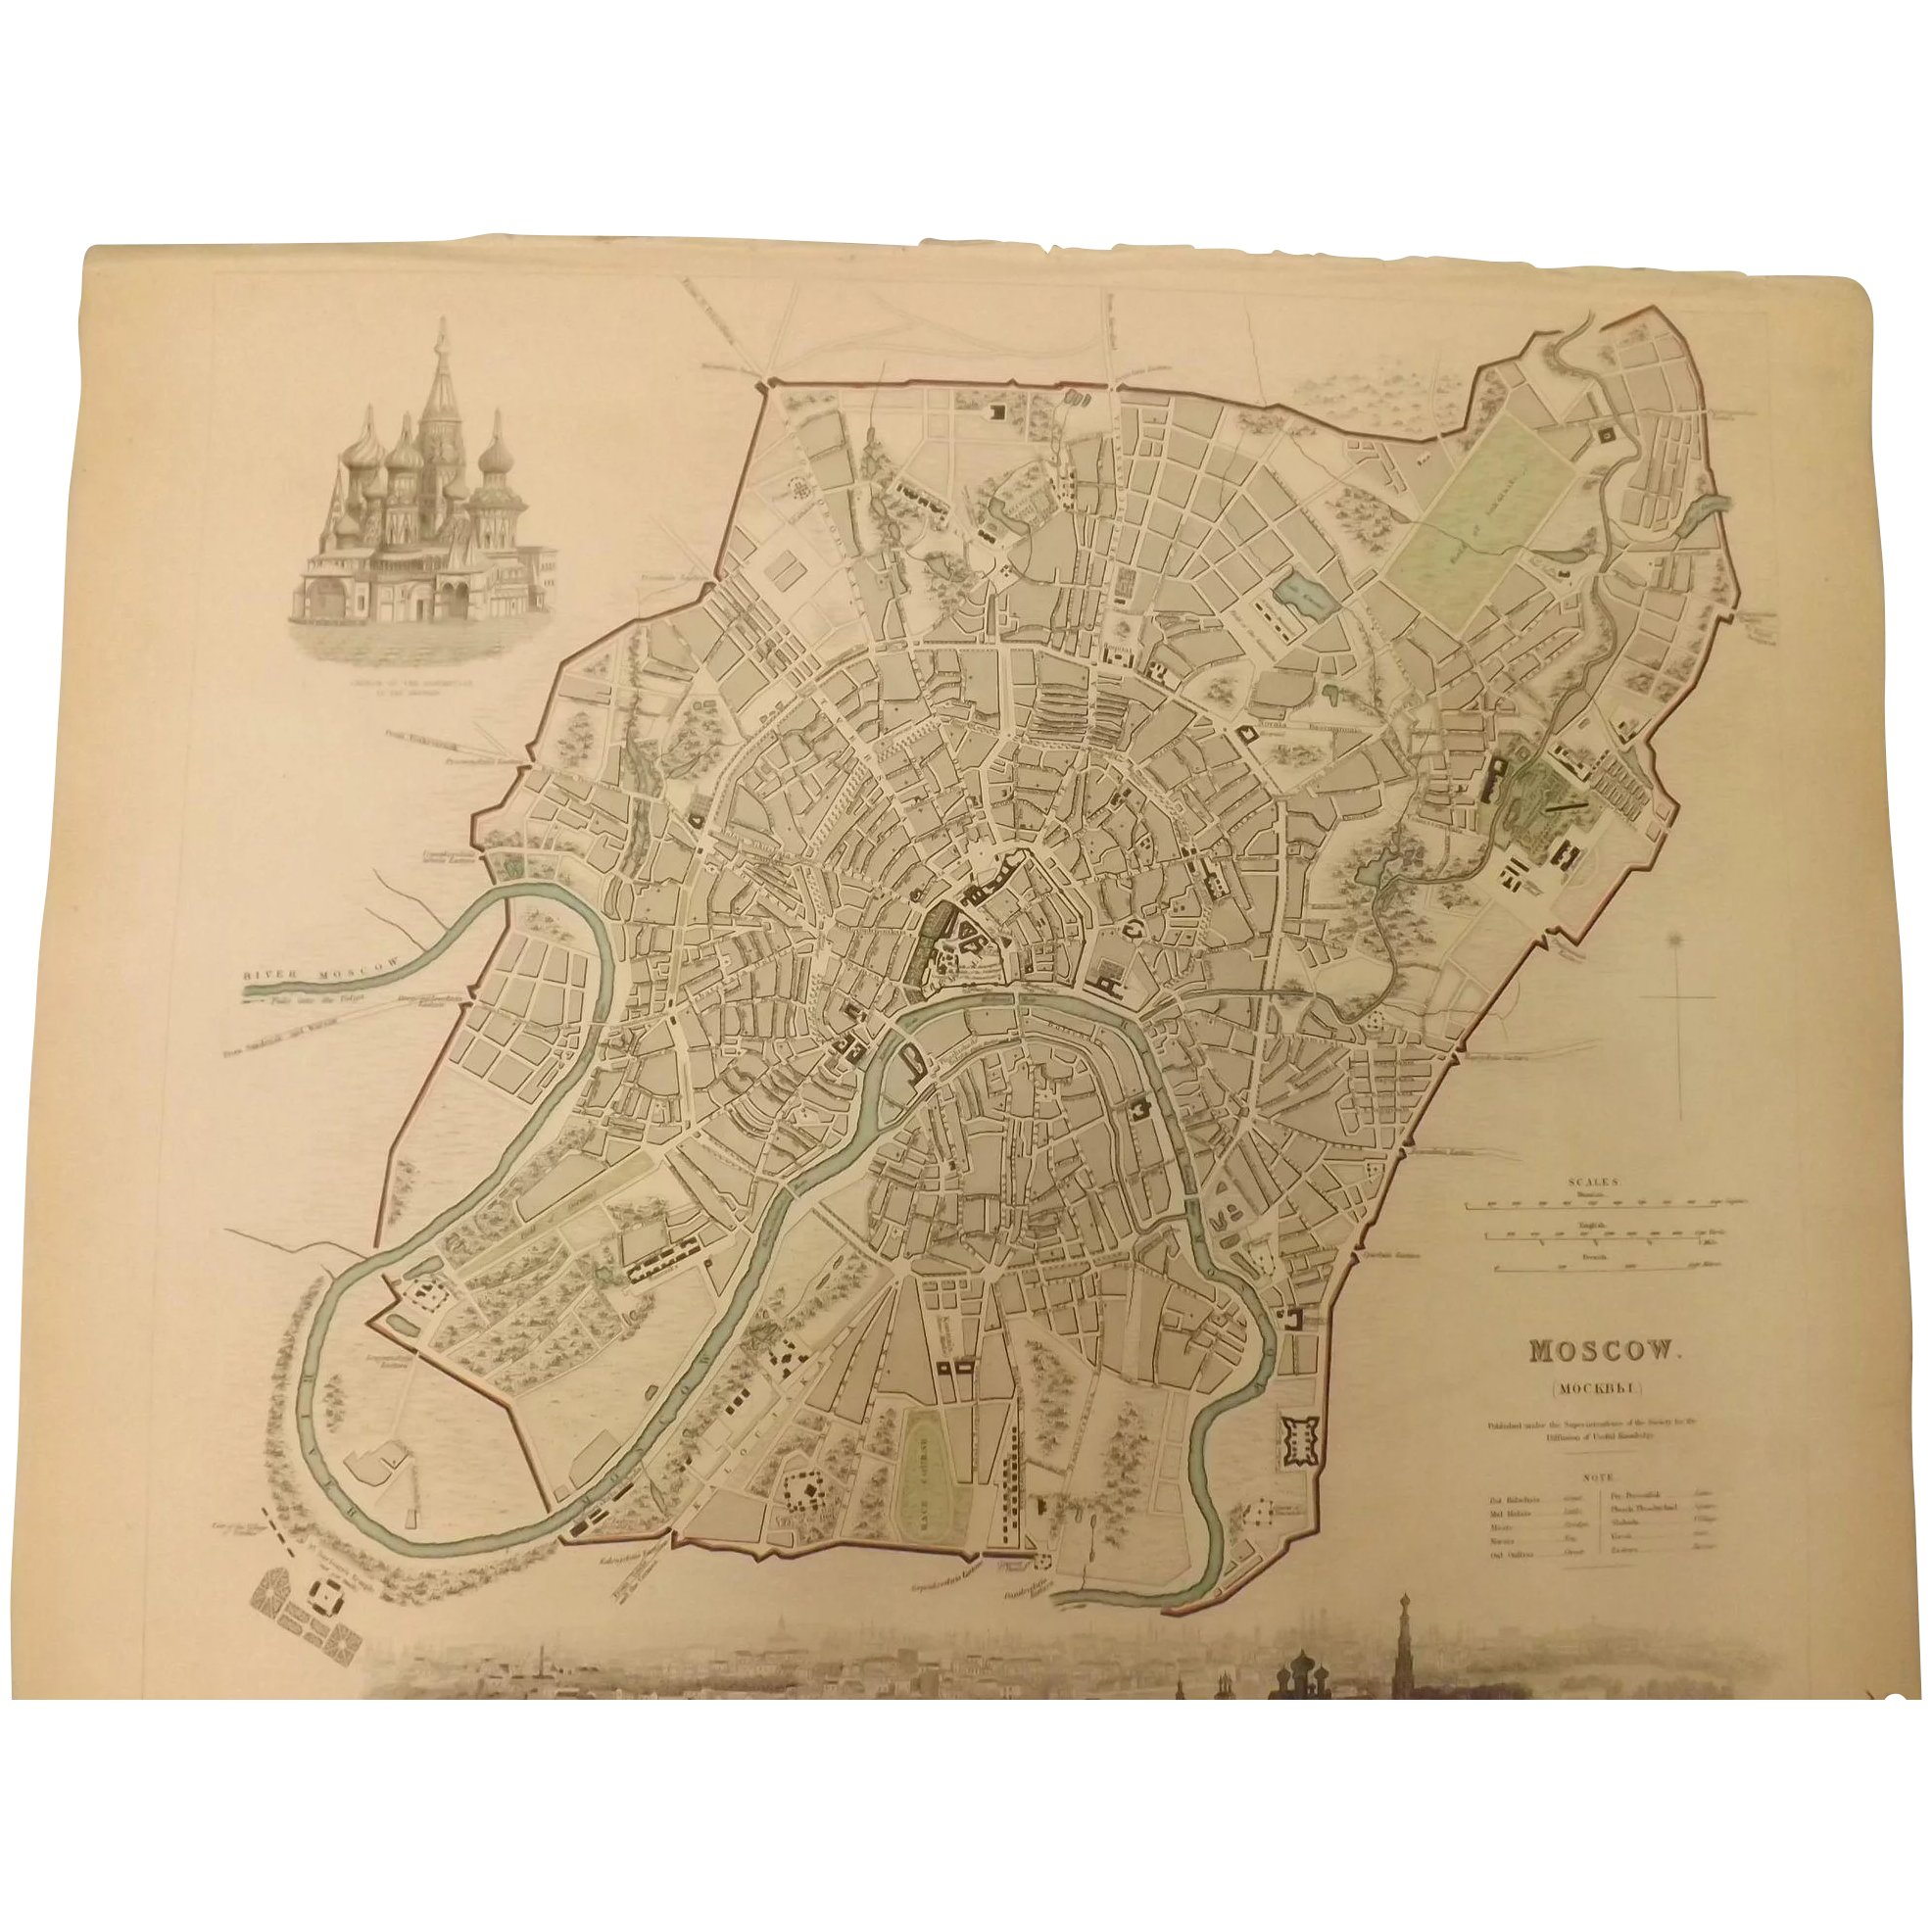 An Original Atlas Map of MOSCOW Published By